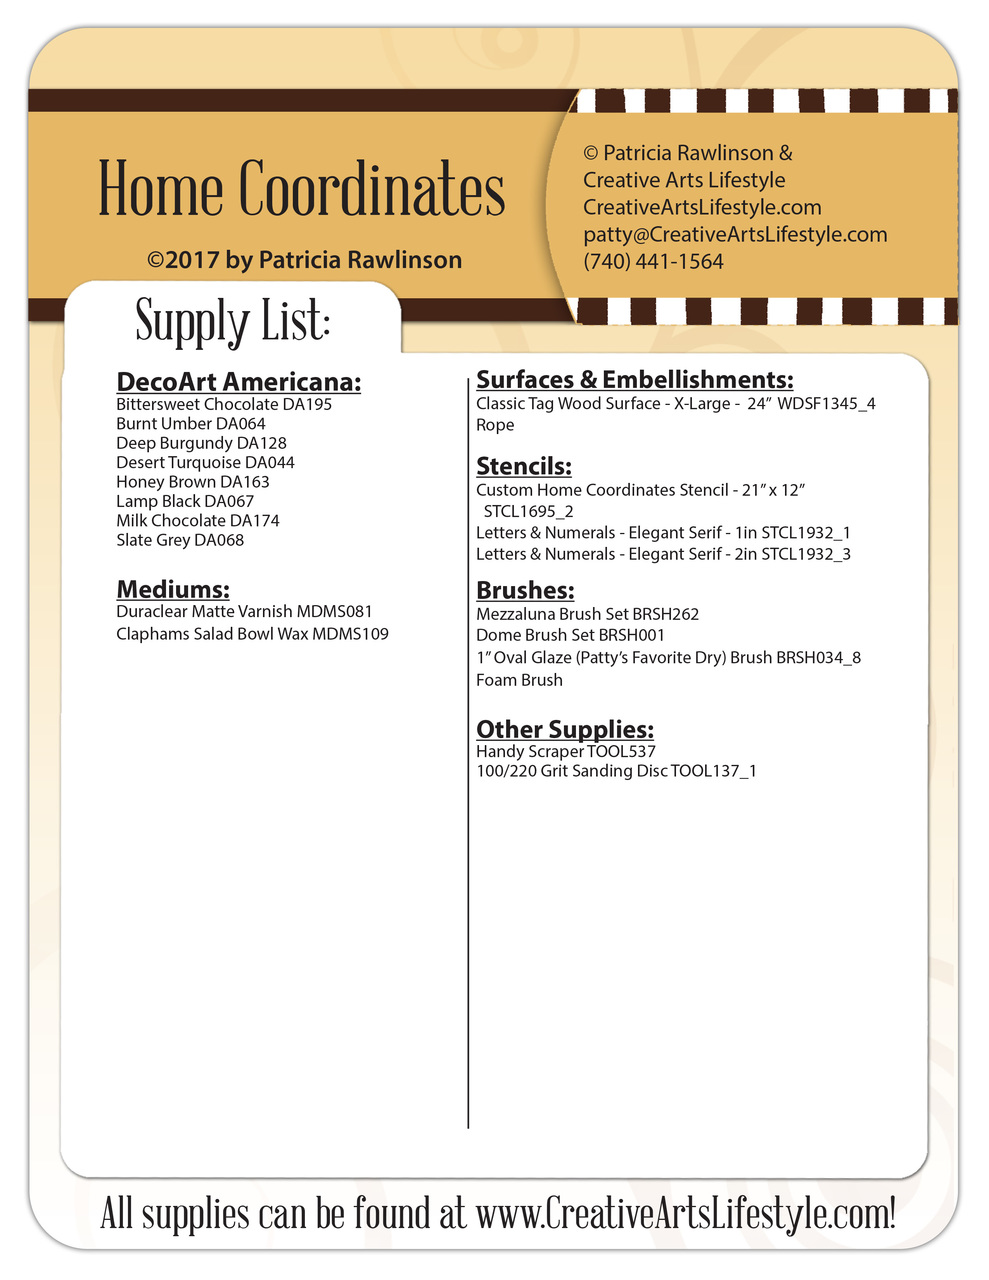 Home Coordinates - E-Packet - Patricia Rawlinson